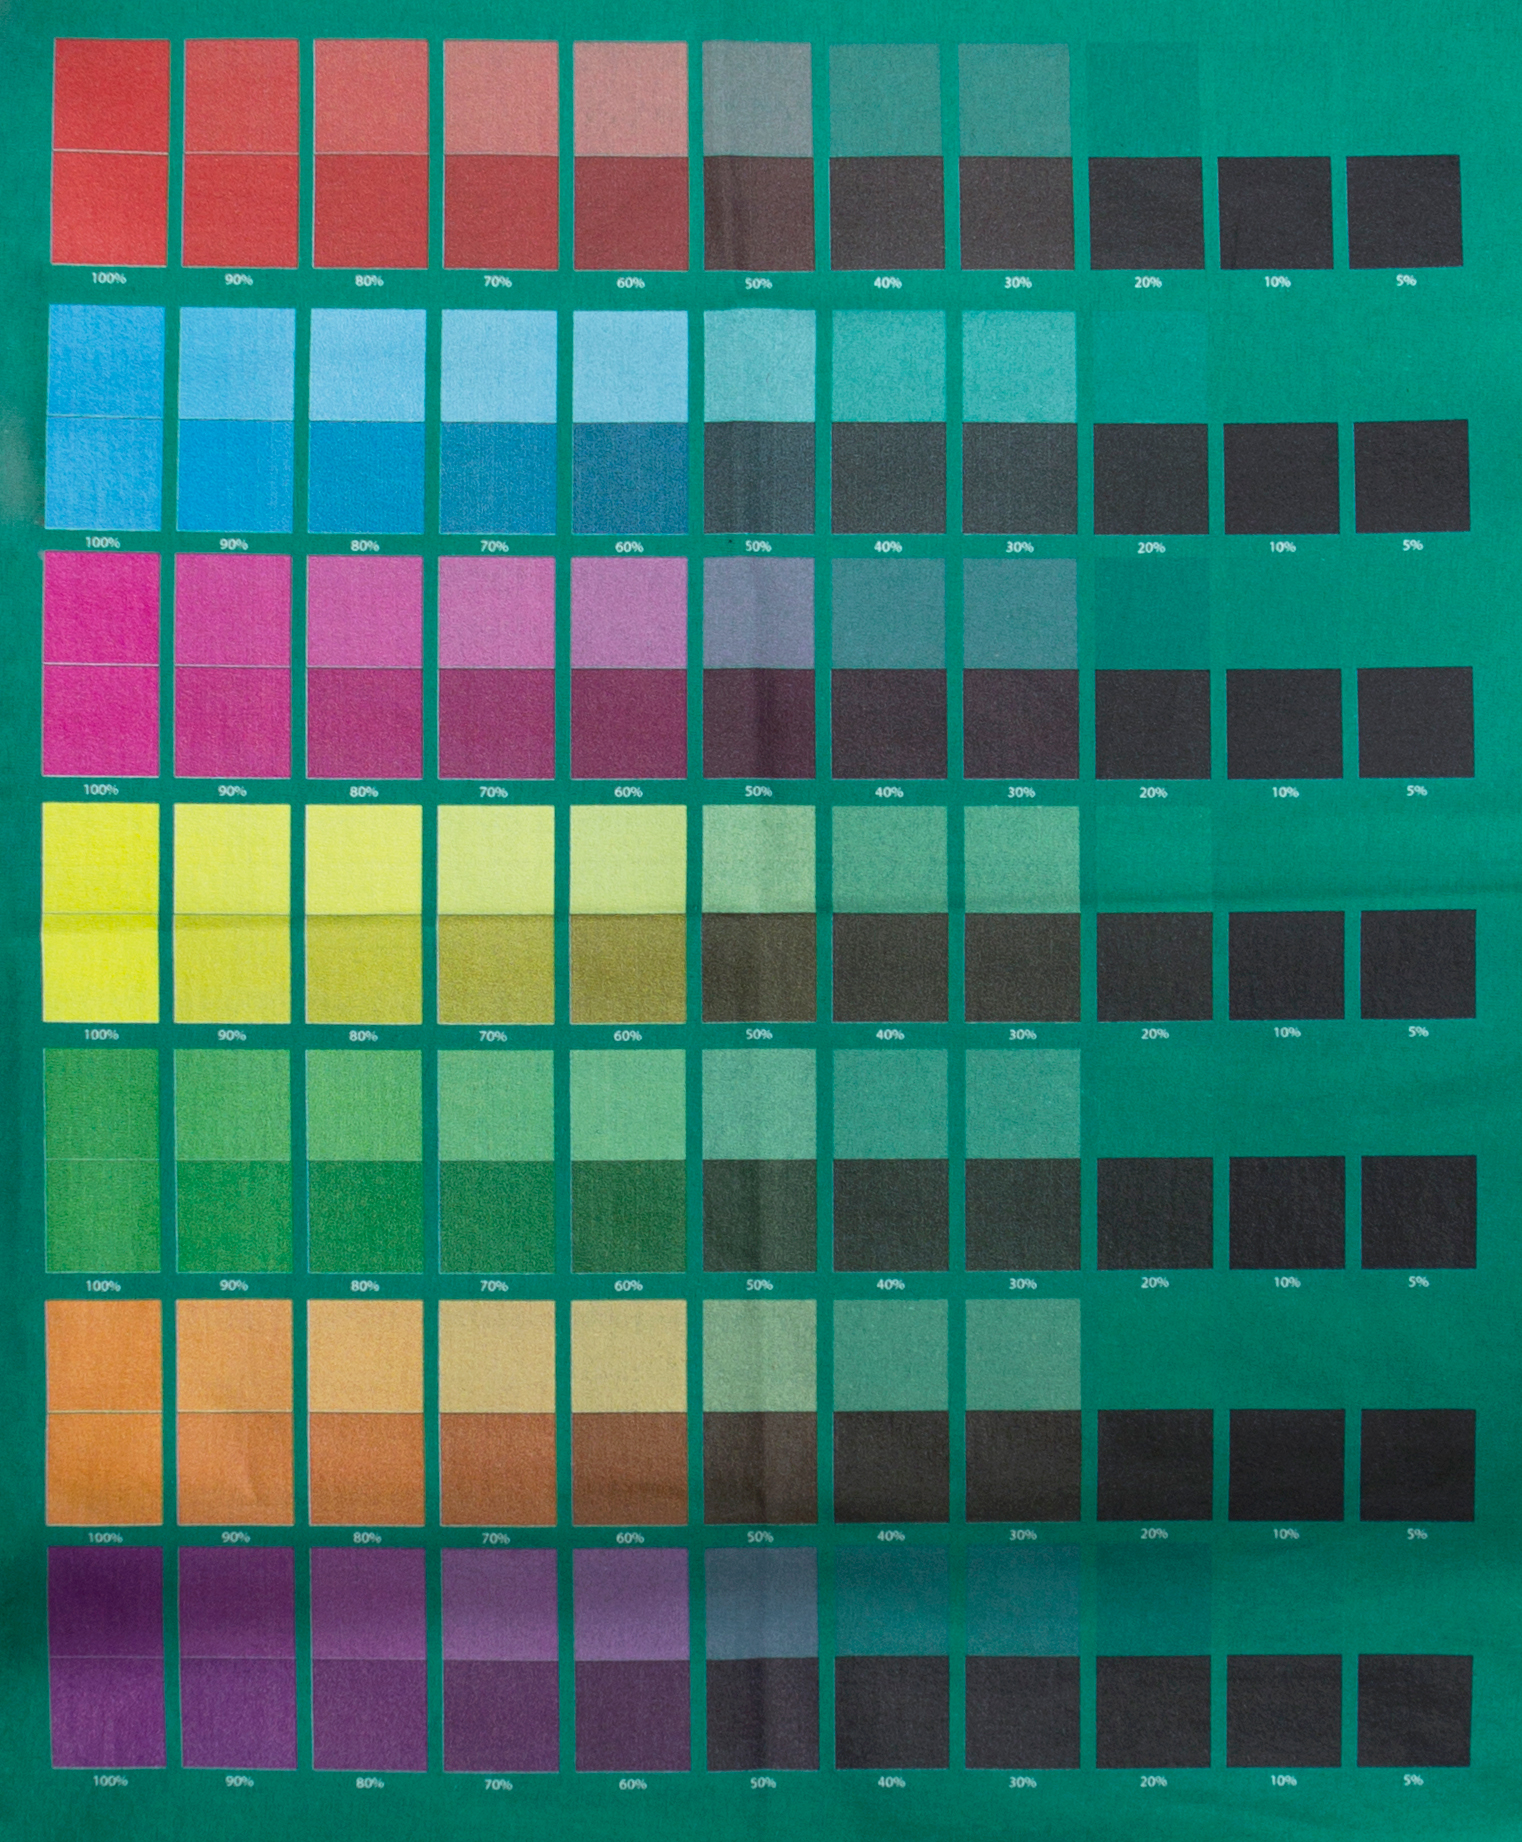 colorswatch_green